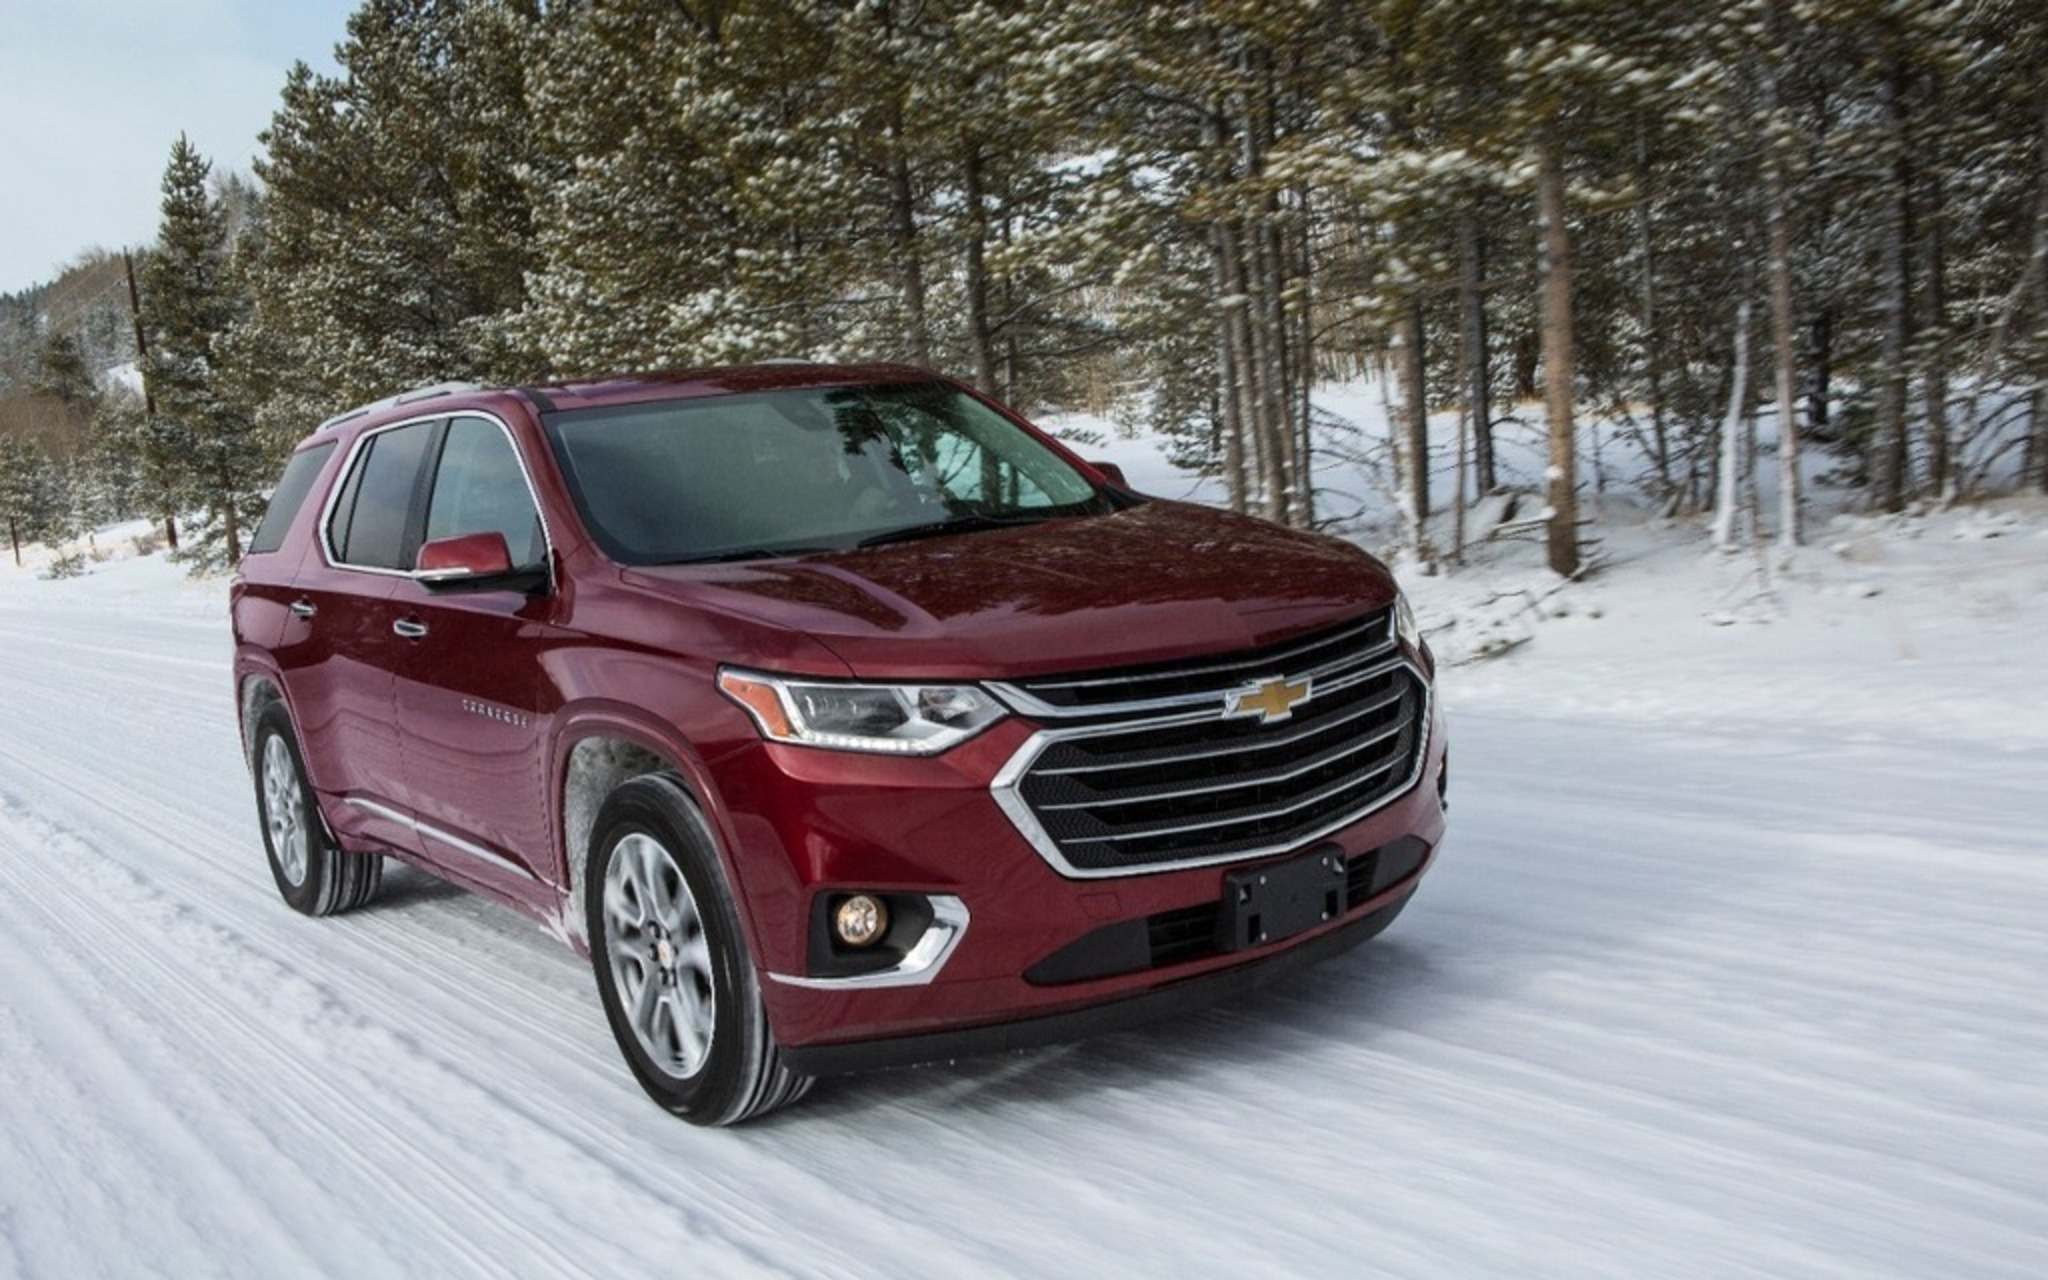 LC MediaThe Chevrolet Traverse finished second on the Car Guide's 2019 midsize SUV list.